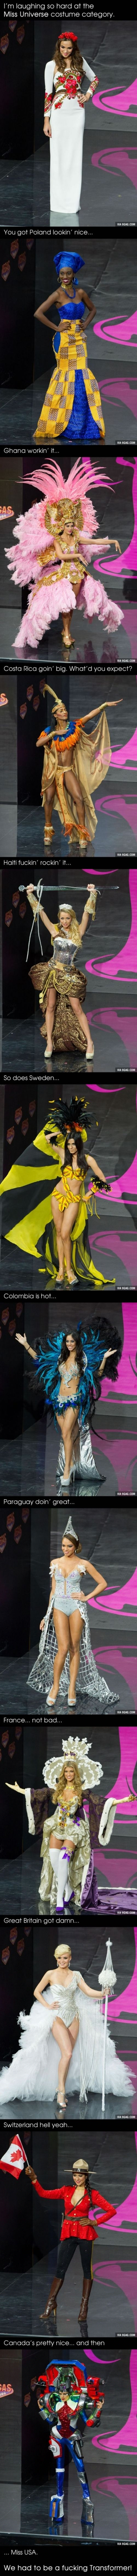 I'm mad Ecuador isn't in this picture but it still gets the point across lol 'Murica